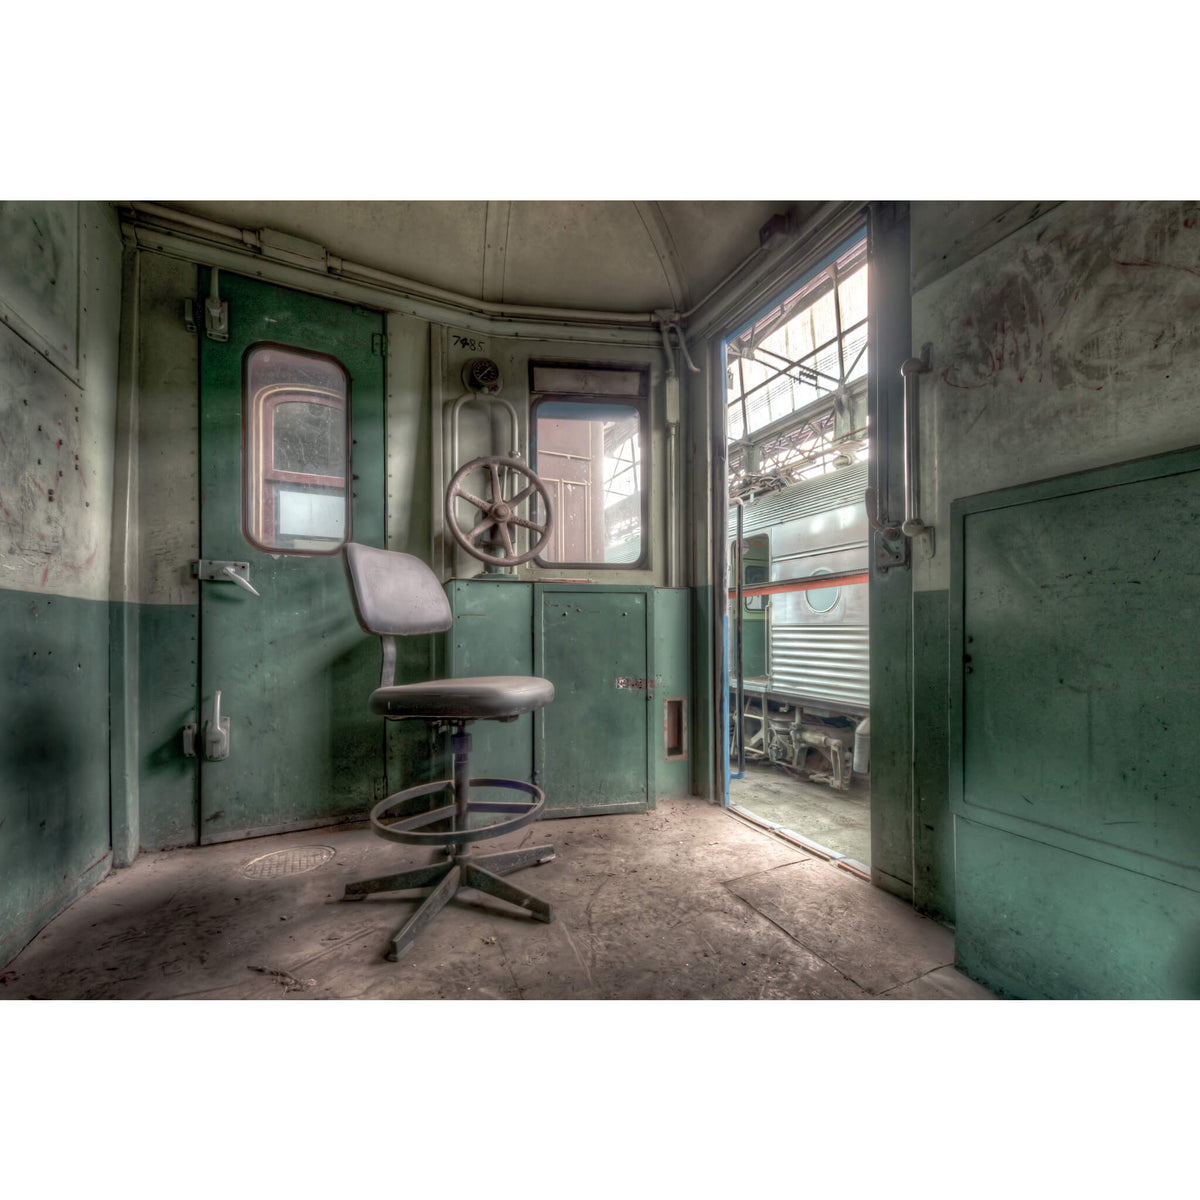 Guards Compartment | Eveleigh Paint Shop Fine Art Print - Lost Collective Shop